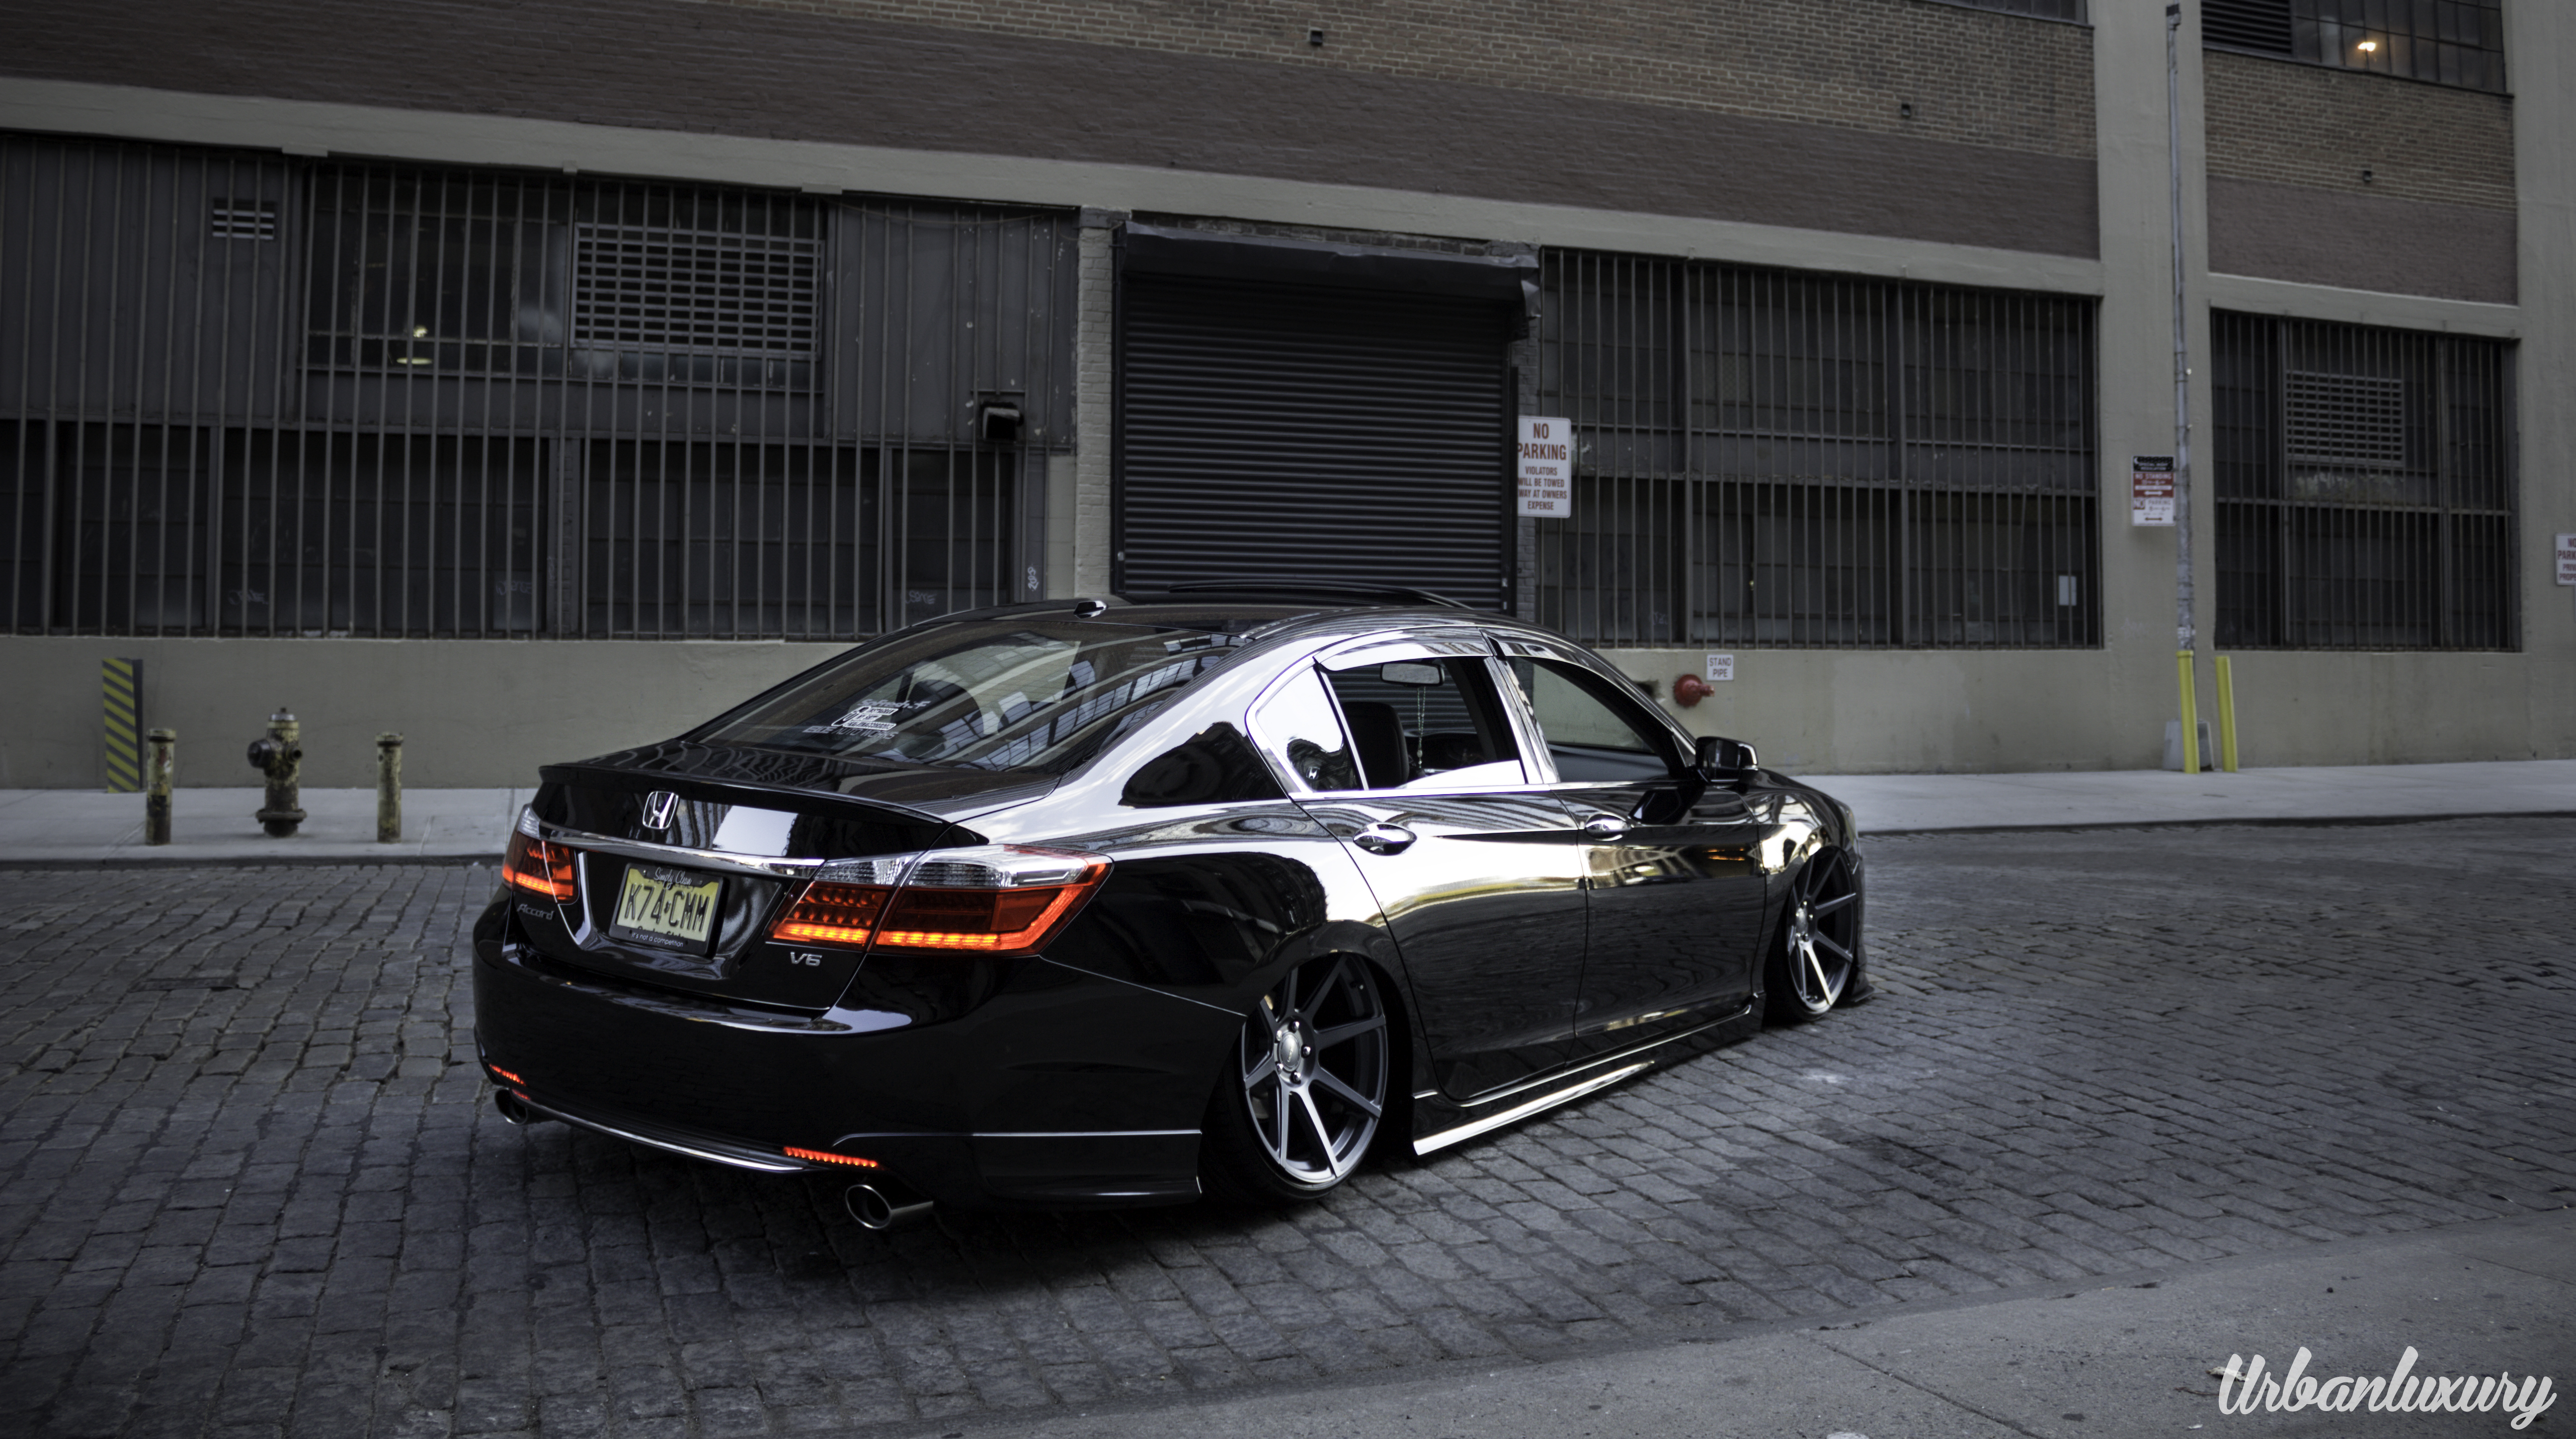 9th gen accord picture thread page 141 drive accord honda forums